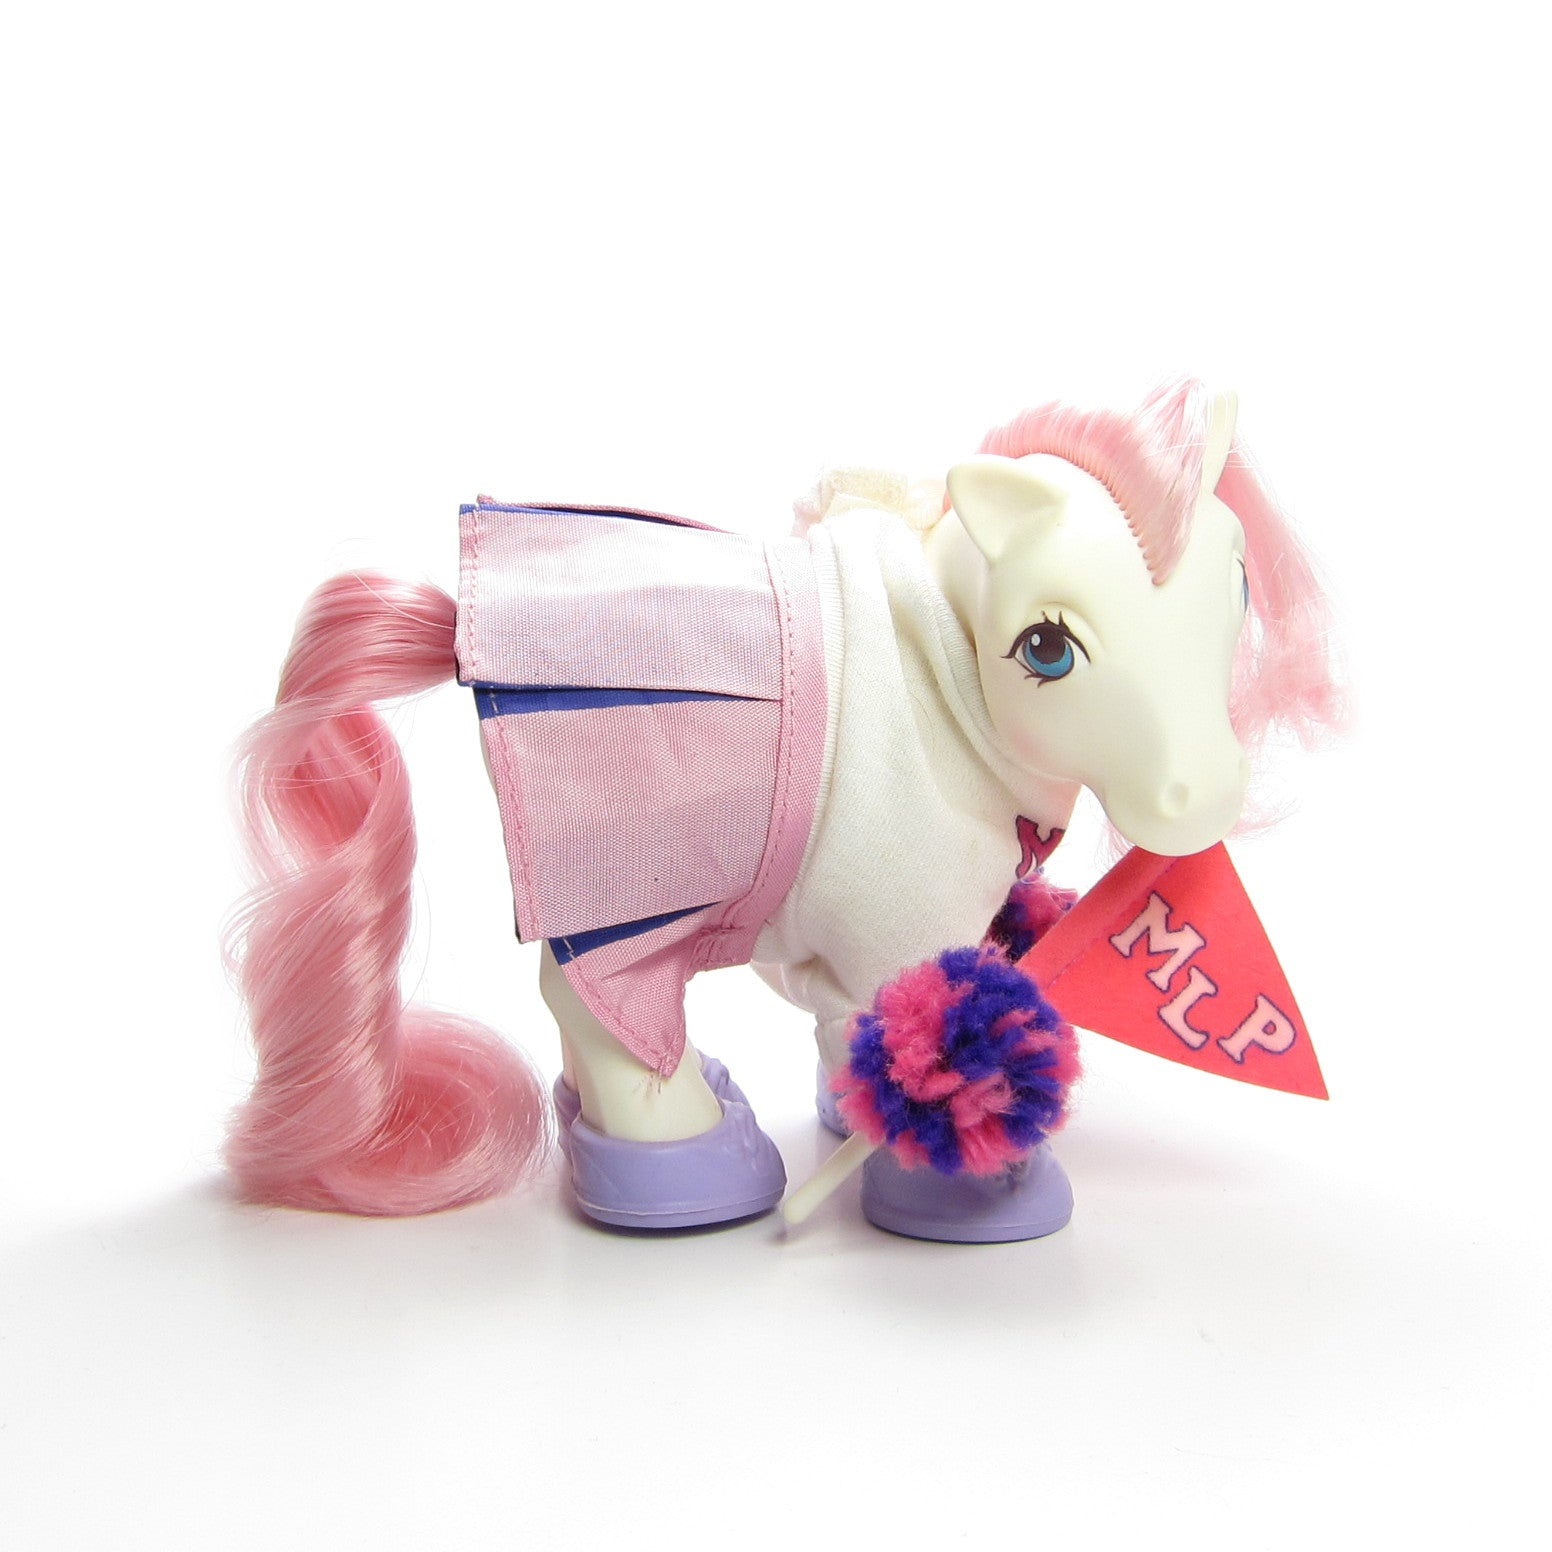 Pom Pom Pony My Little Pony outfit